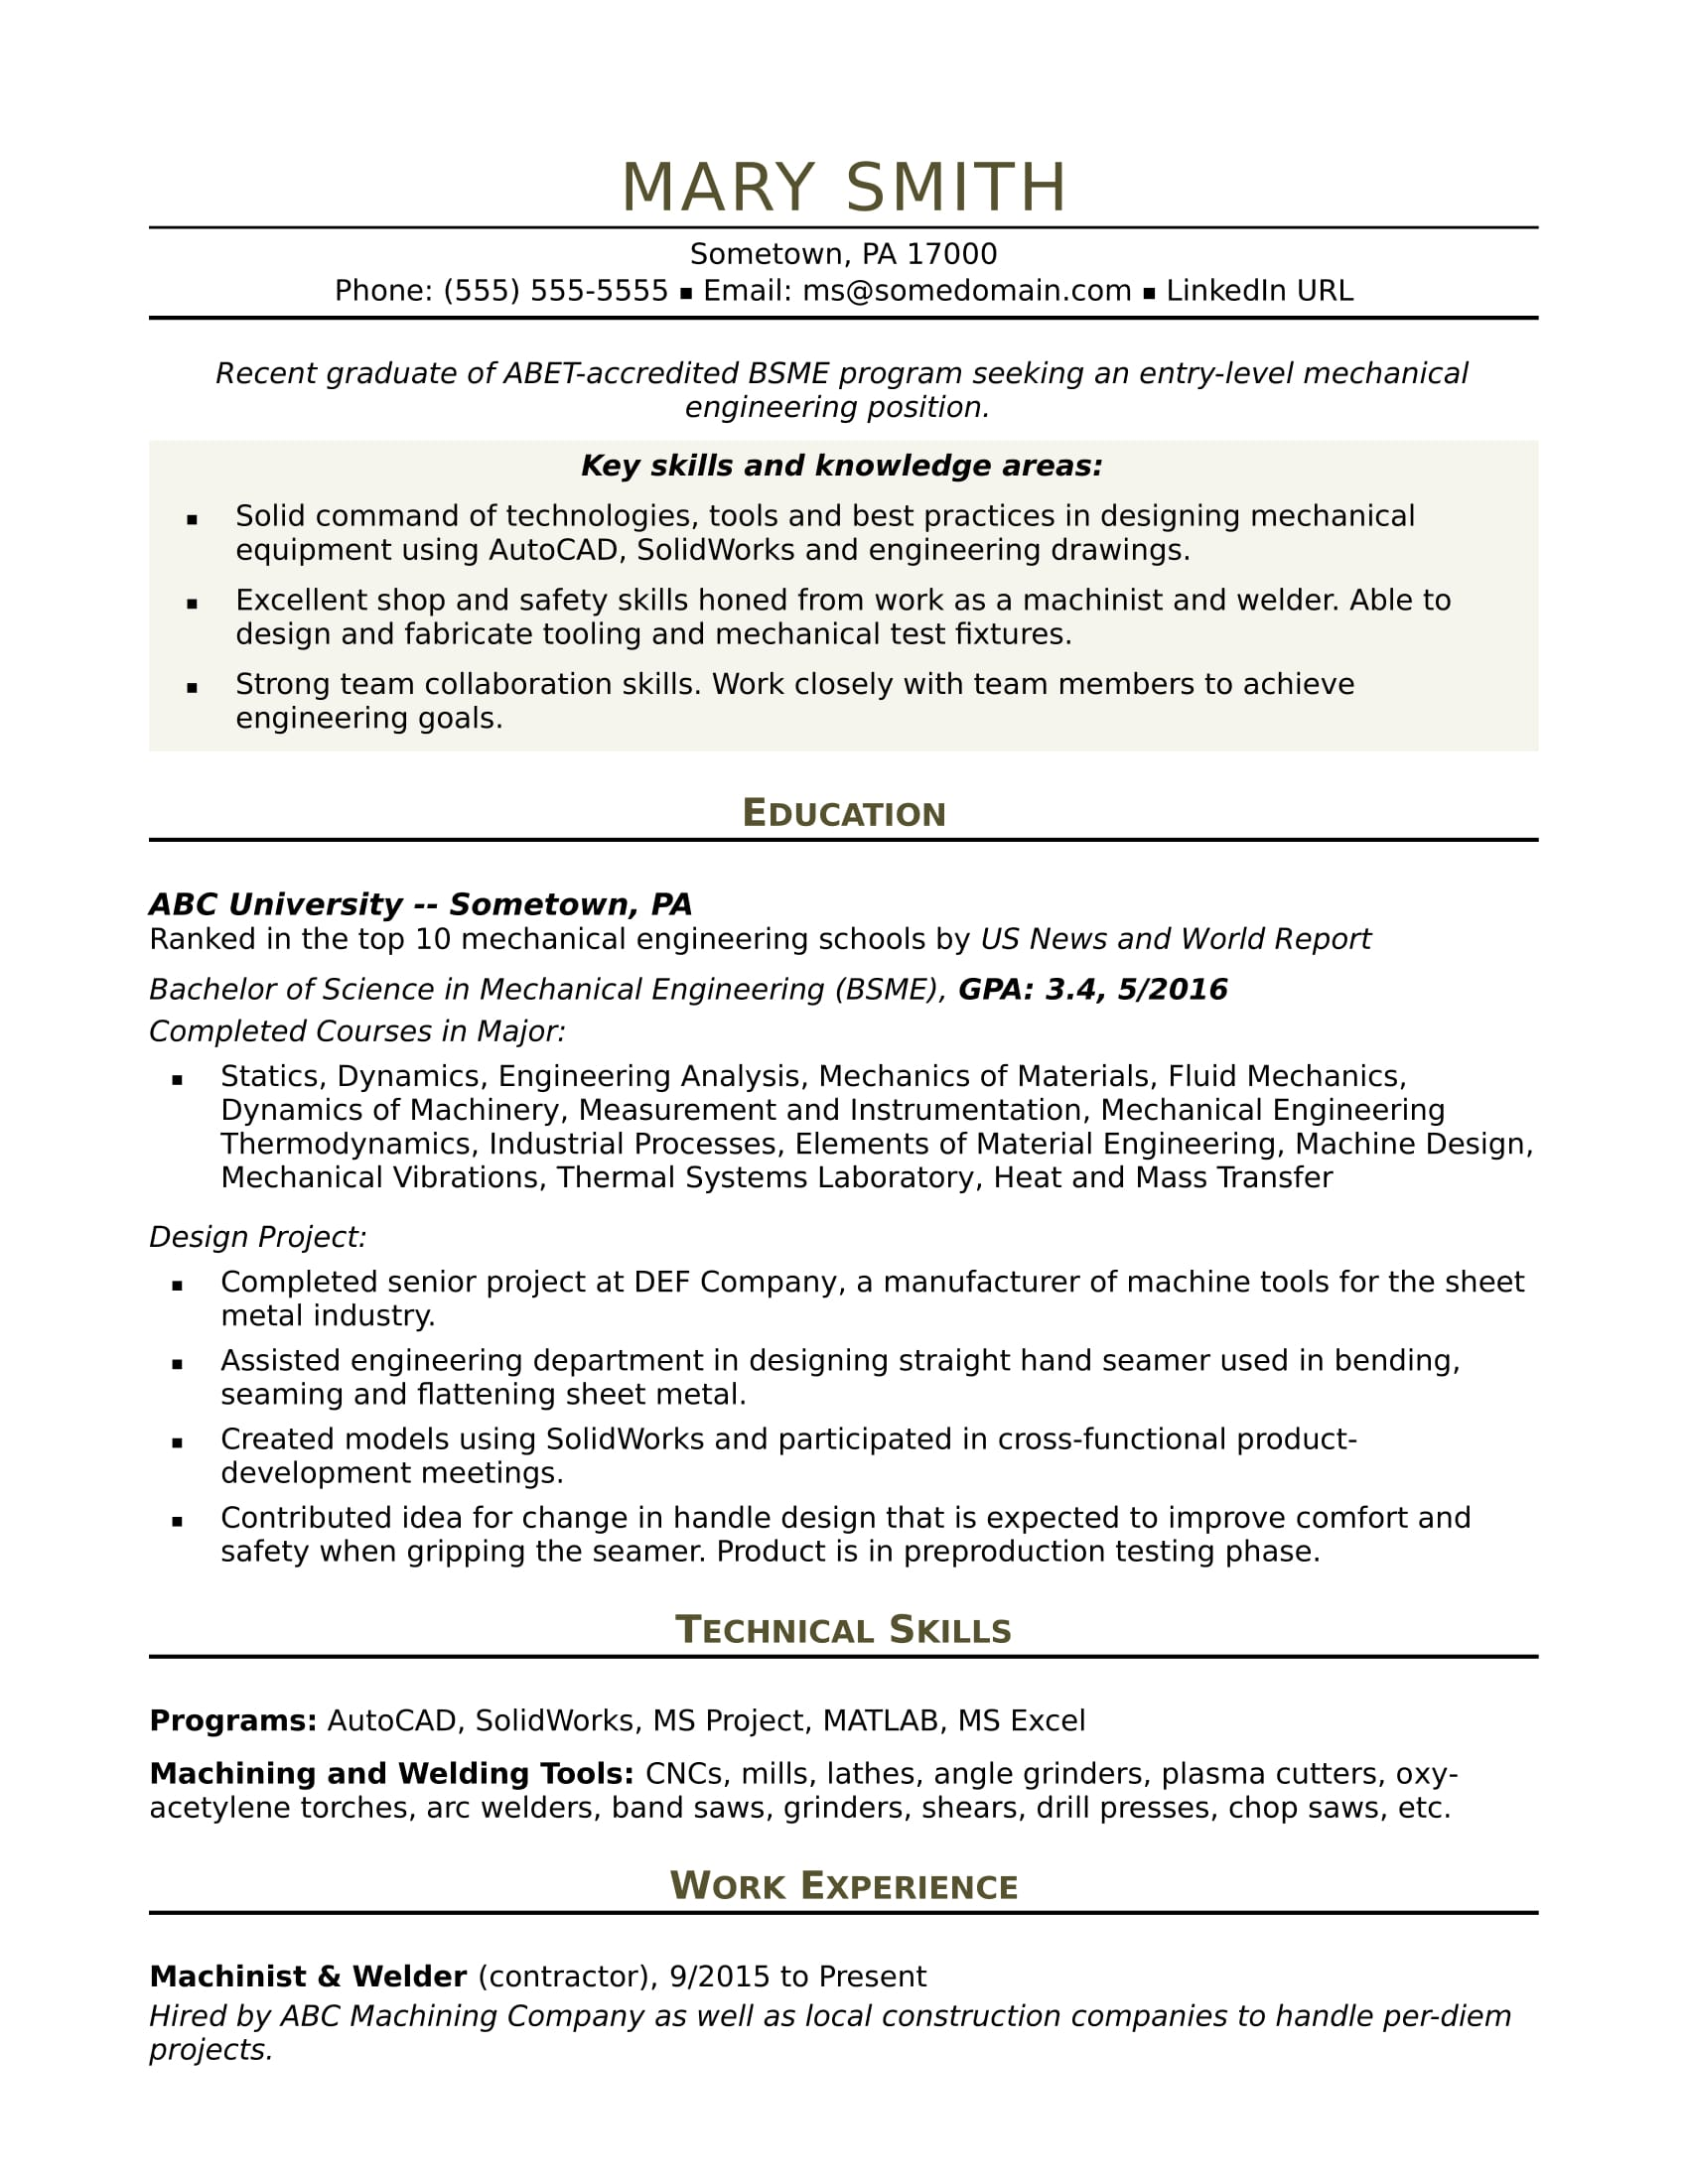 Wonderful Sample Resume For An Entry Level Mechanical Engineer  Resume For Mechanical Engineer